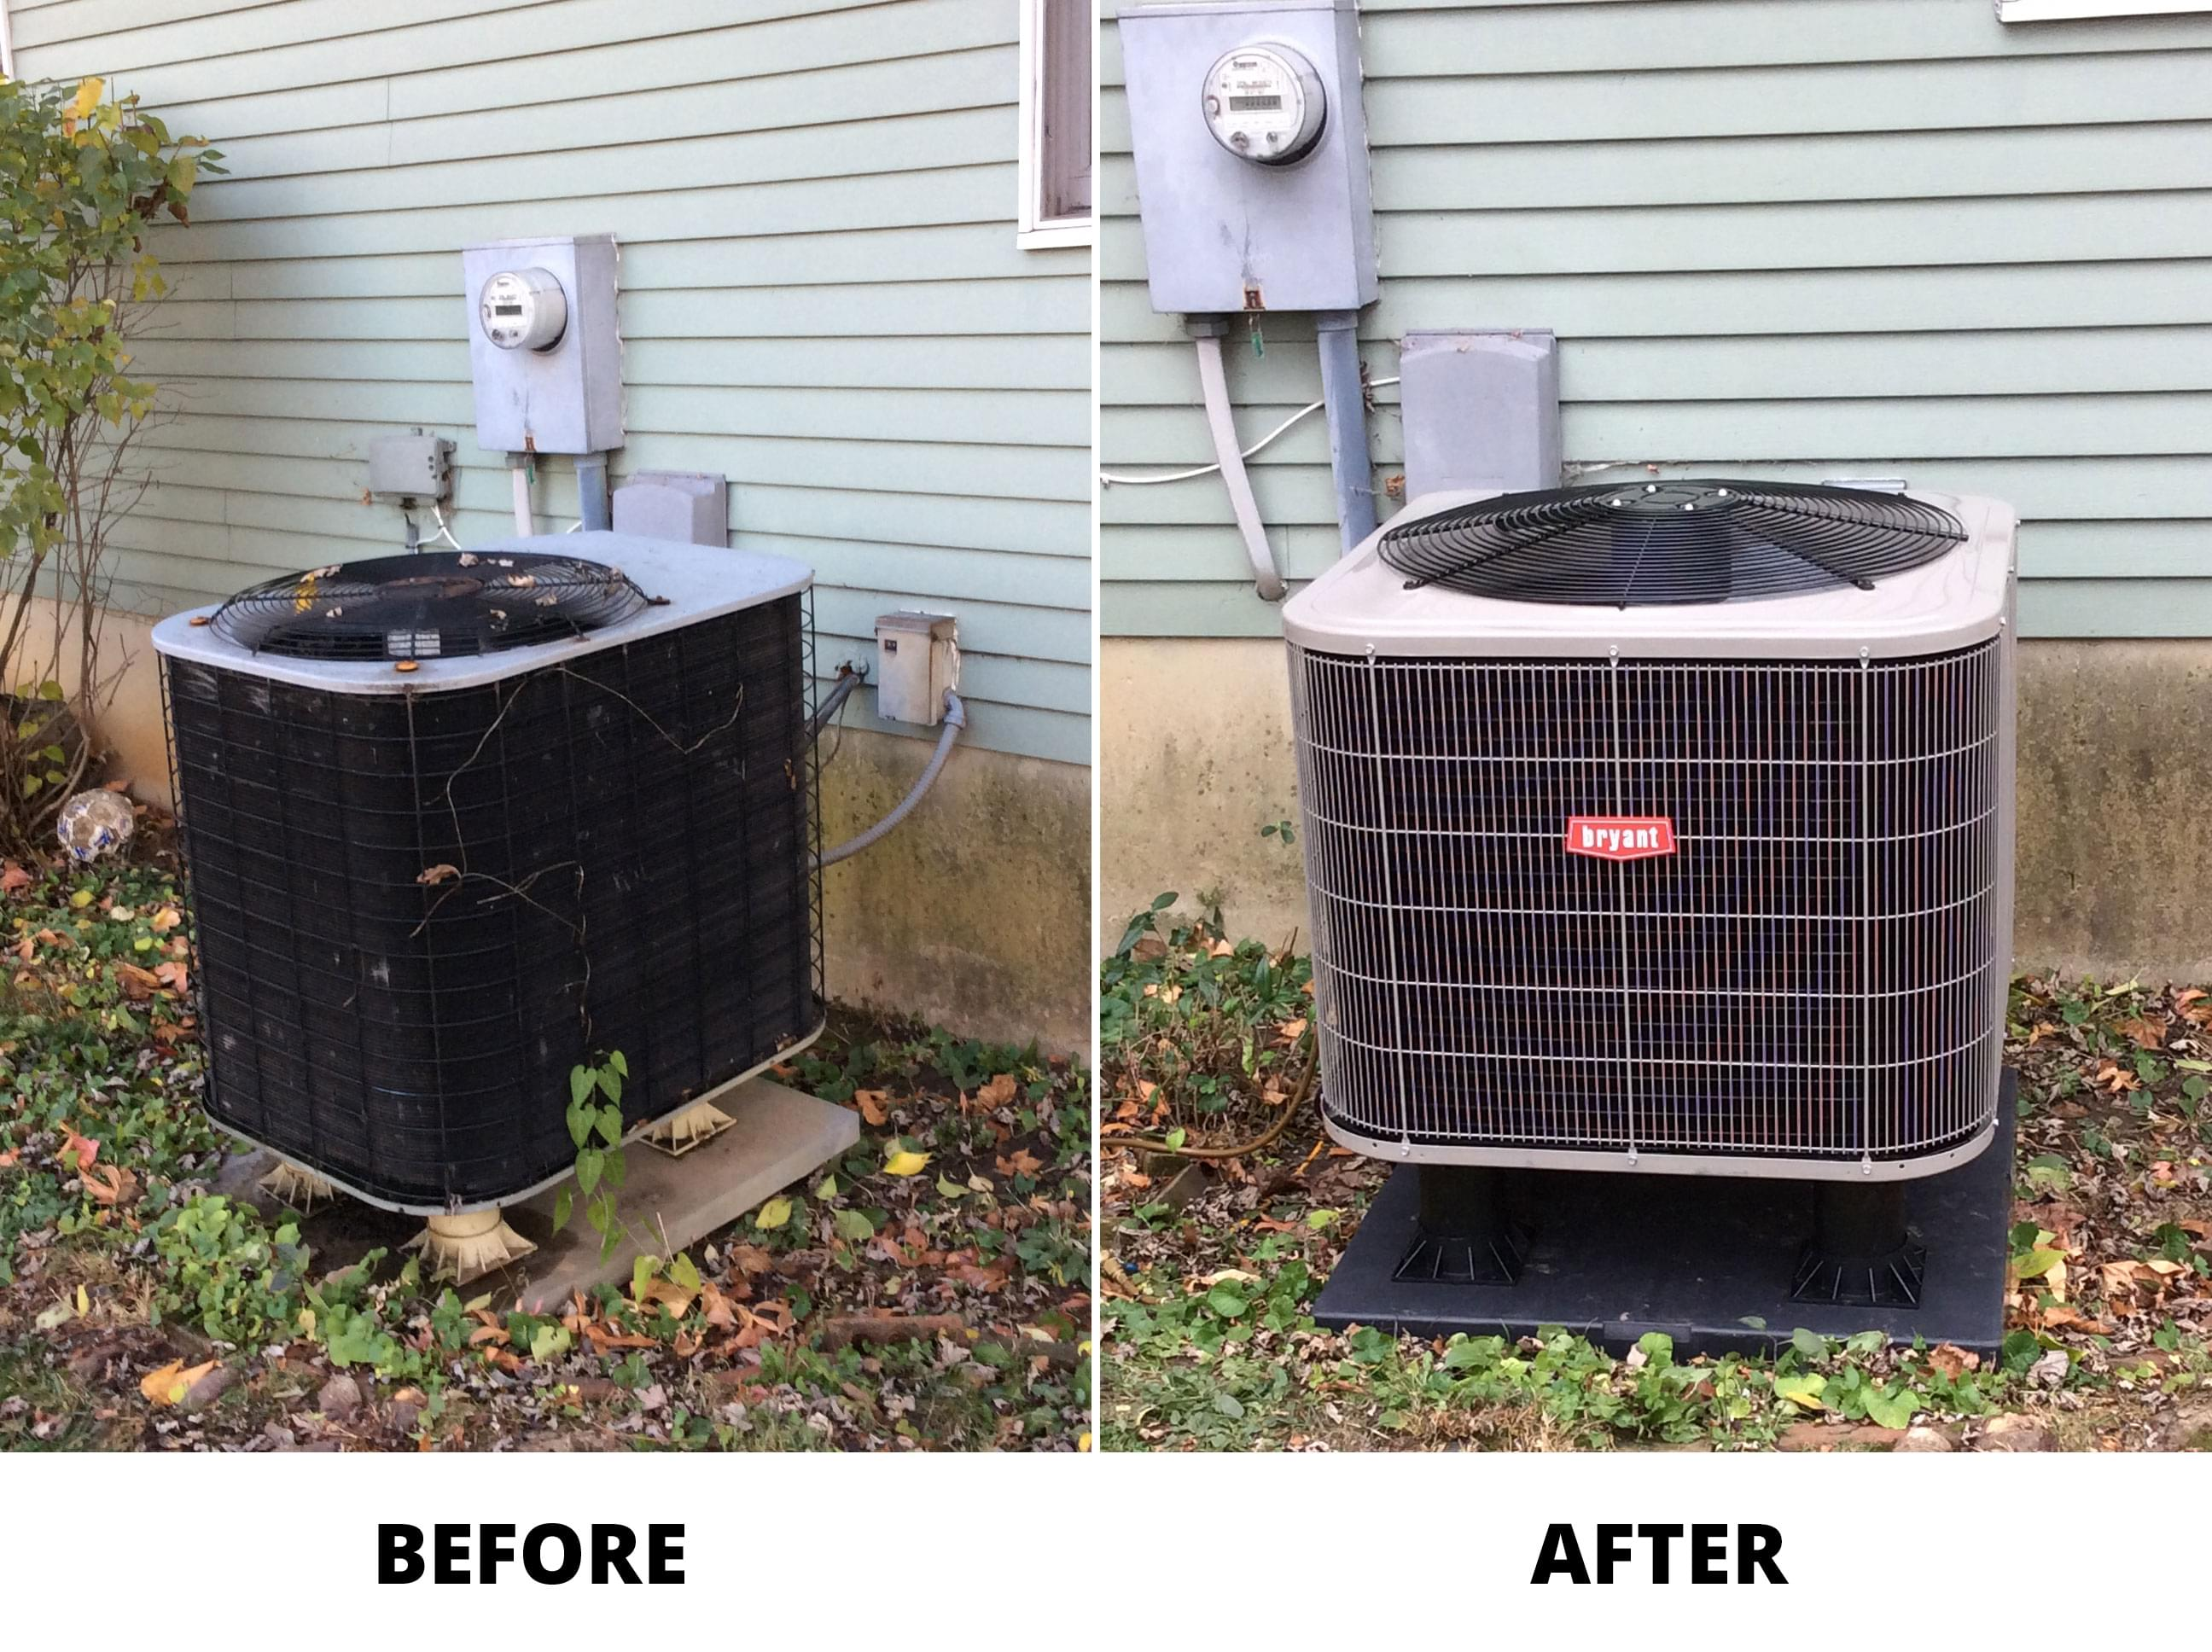 How To Install A Heat Pump Installation Images And Photo Gallery For Jfk Heating And Cooling